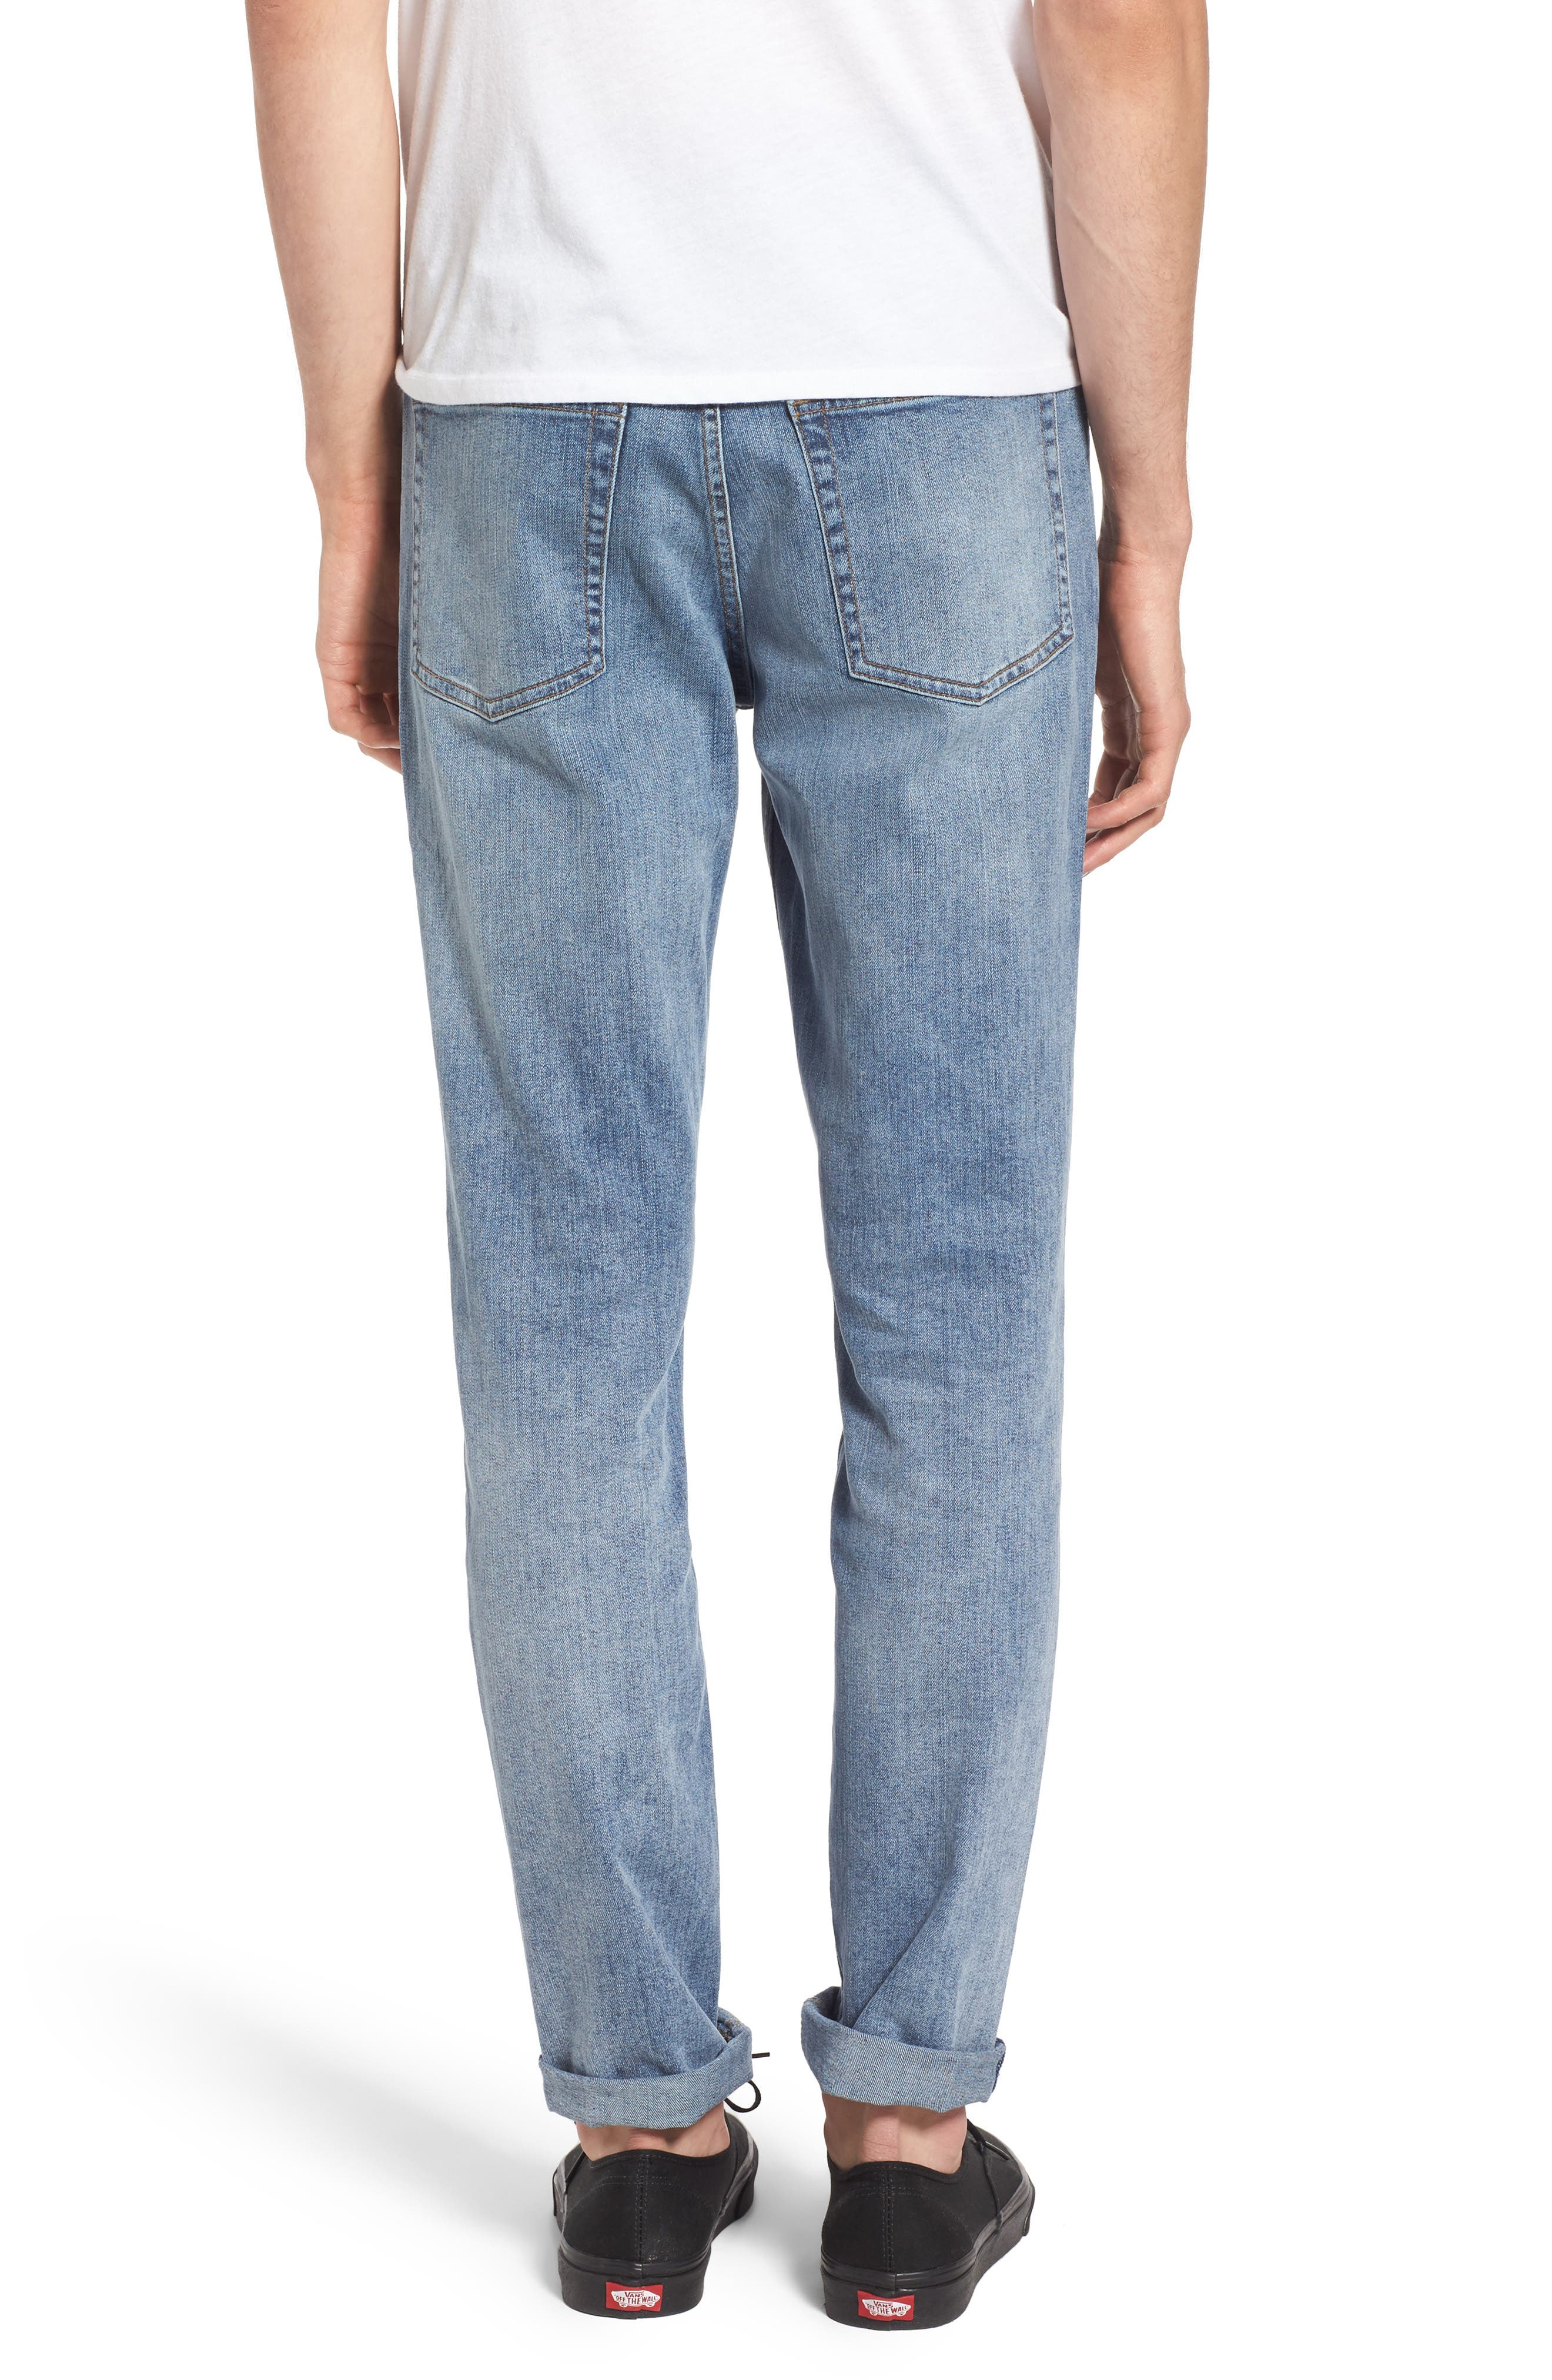 Sonic Skinny Fit Jeans,                             Alternate thumbnail 2, color,                             458